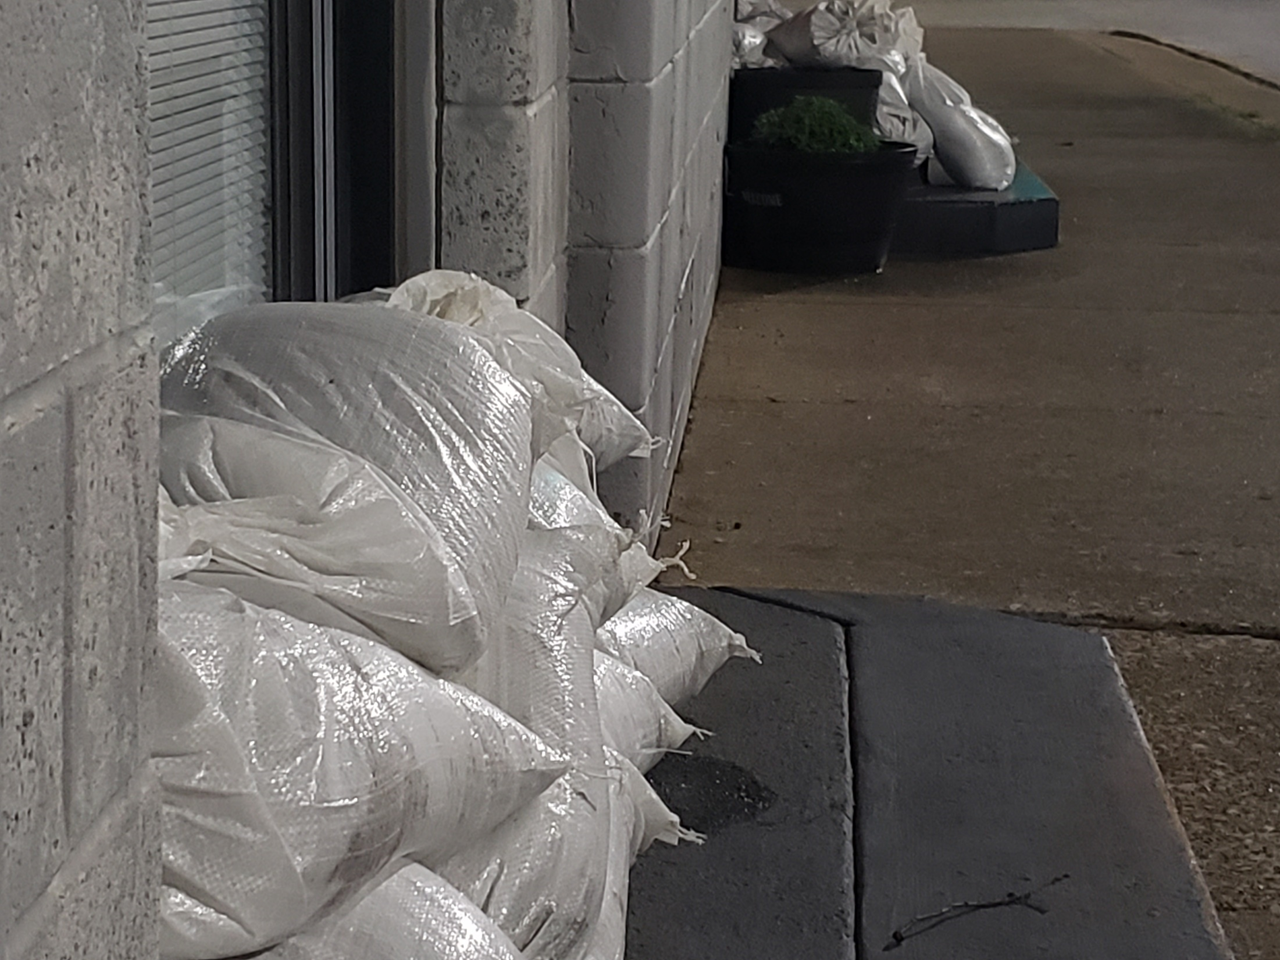 City of Huntingburg Making Sandbags Available For Residents as Heavy Rain is Expected